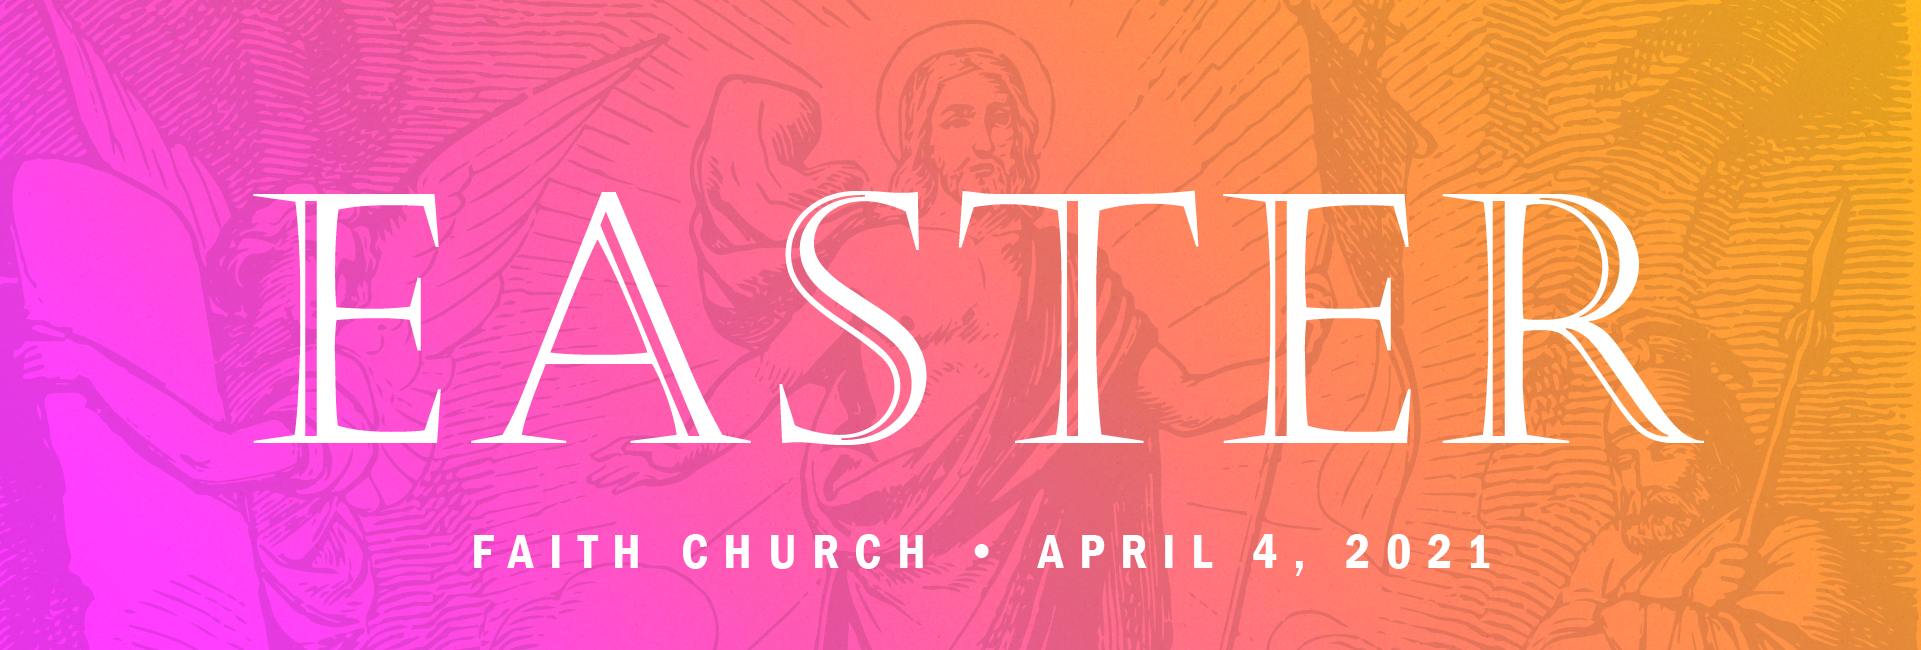 Easter_Castellar+Franklin_Web